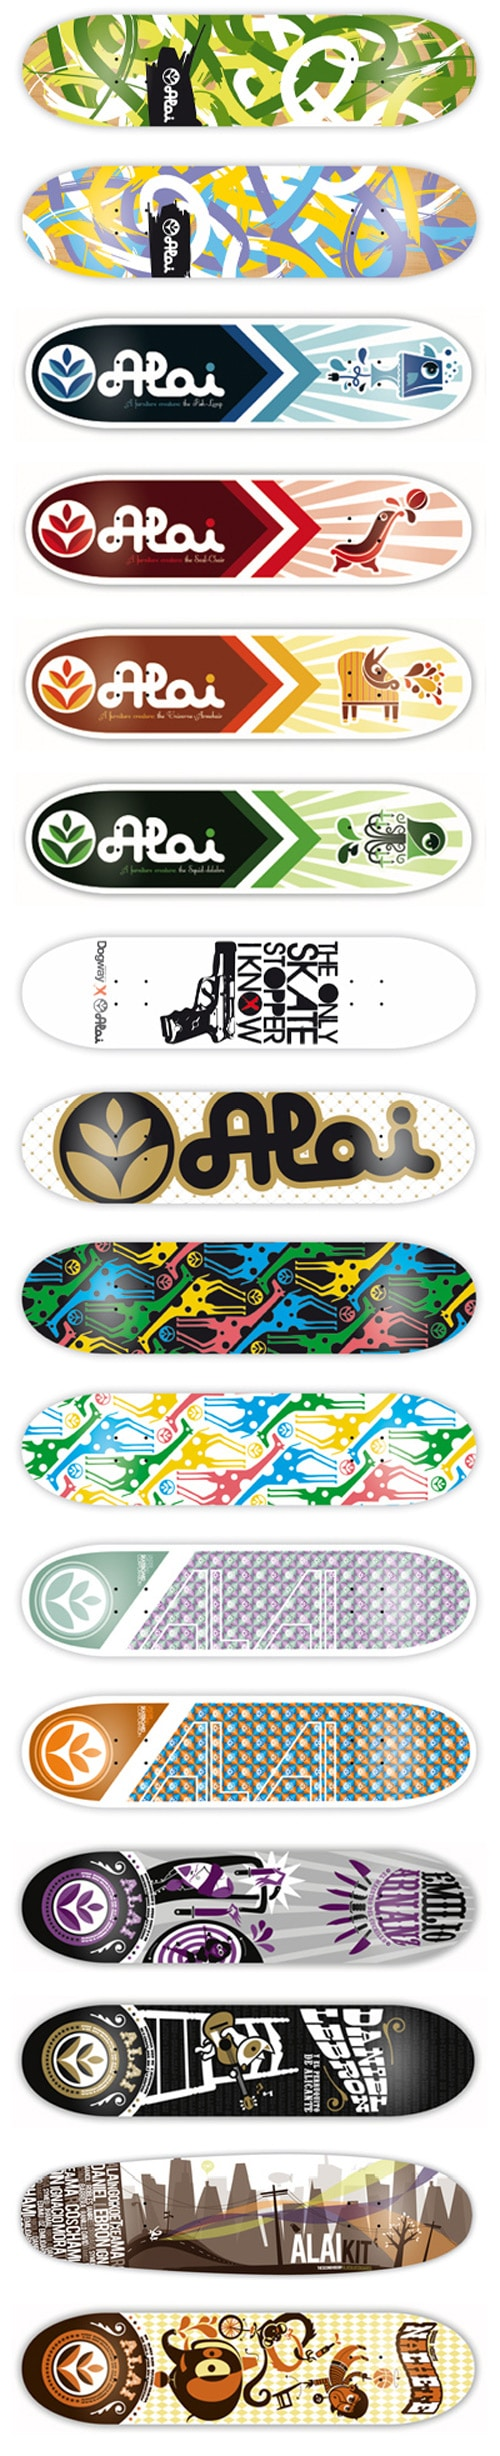 Skateboard designs by Ruben Sanchez